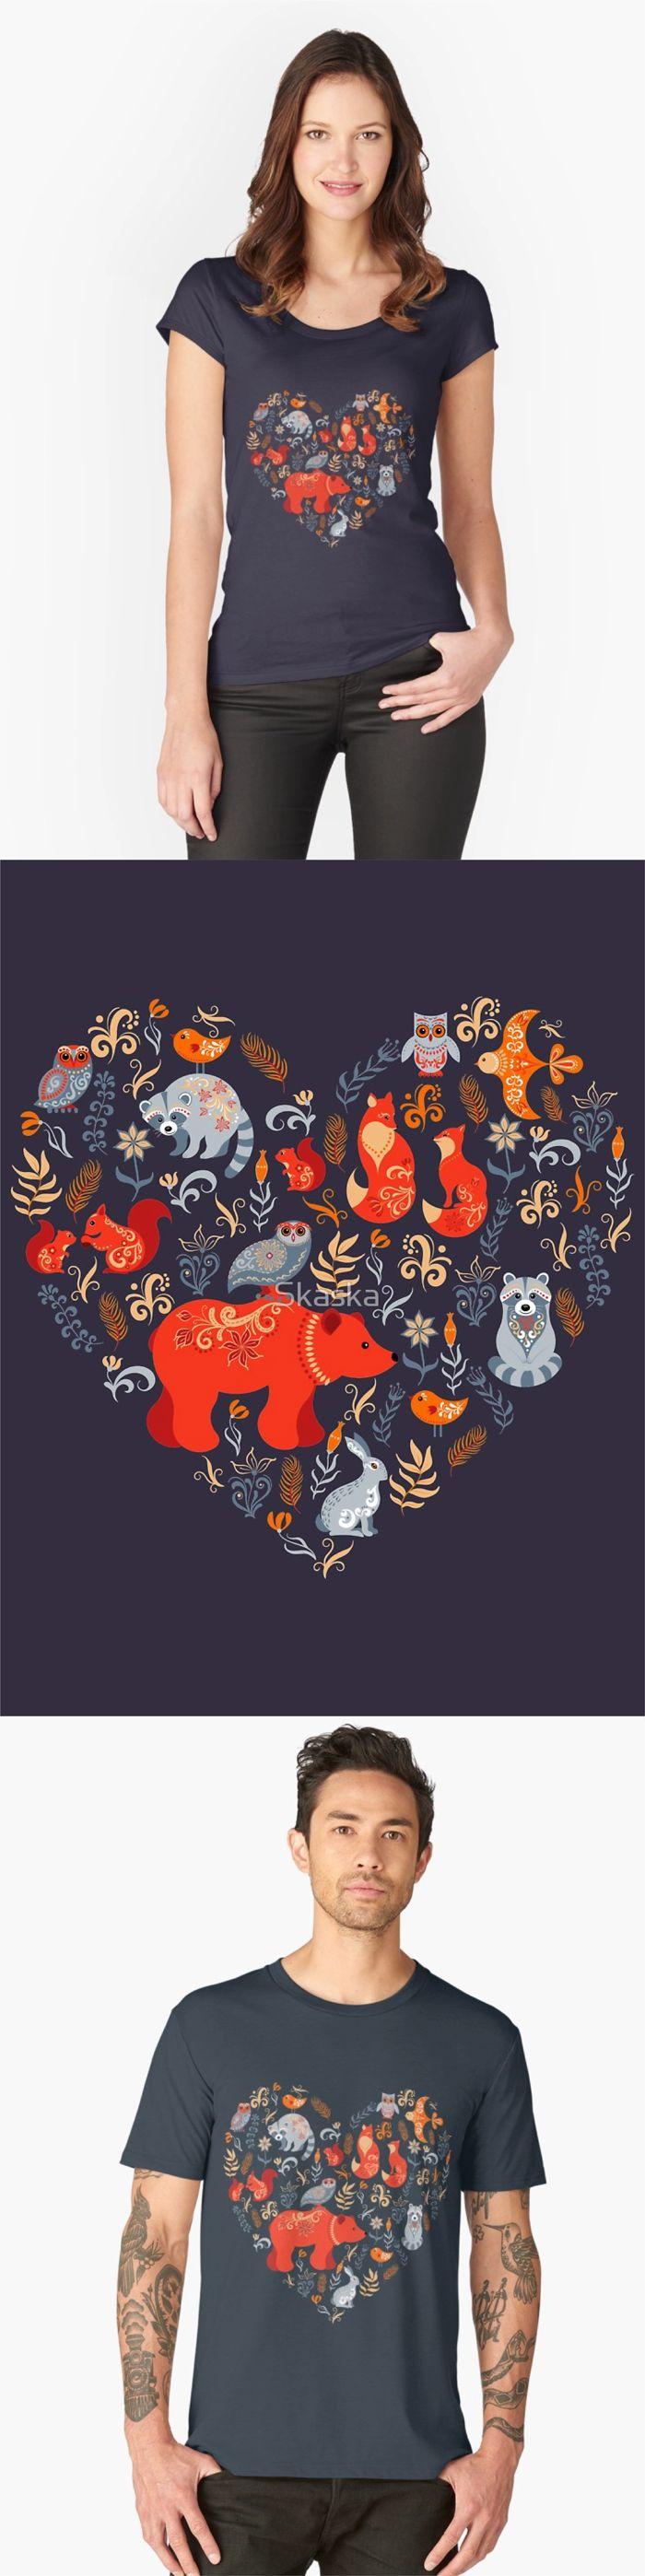 Fairy-tale forest. Fox, bear, raccoon, owls, rabbits, flowers and herbs on a blue background.